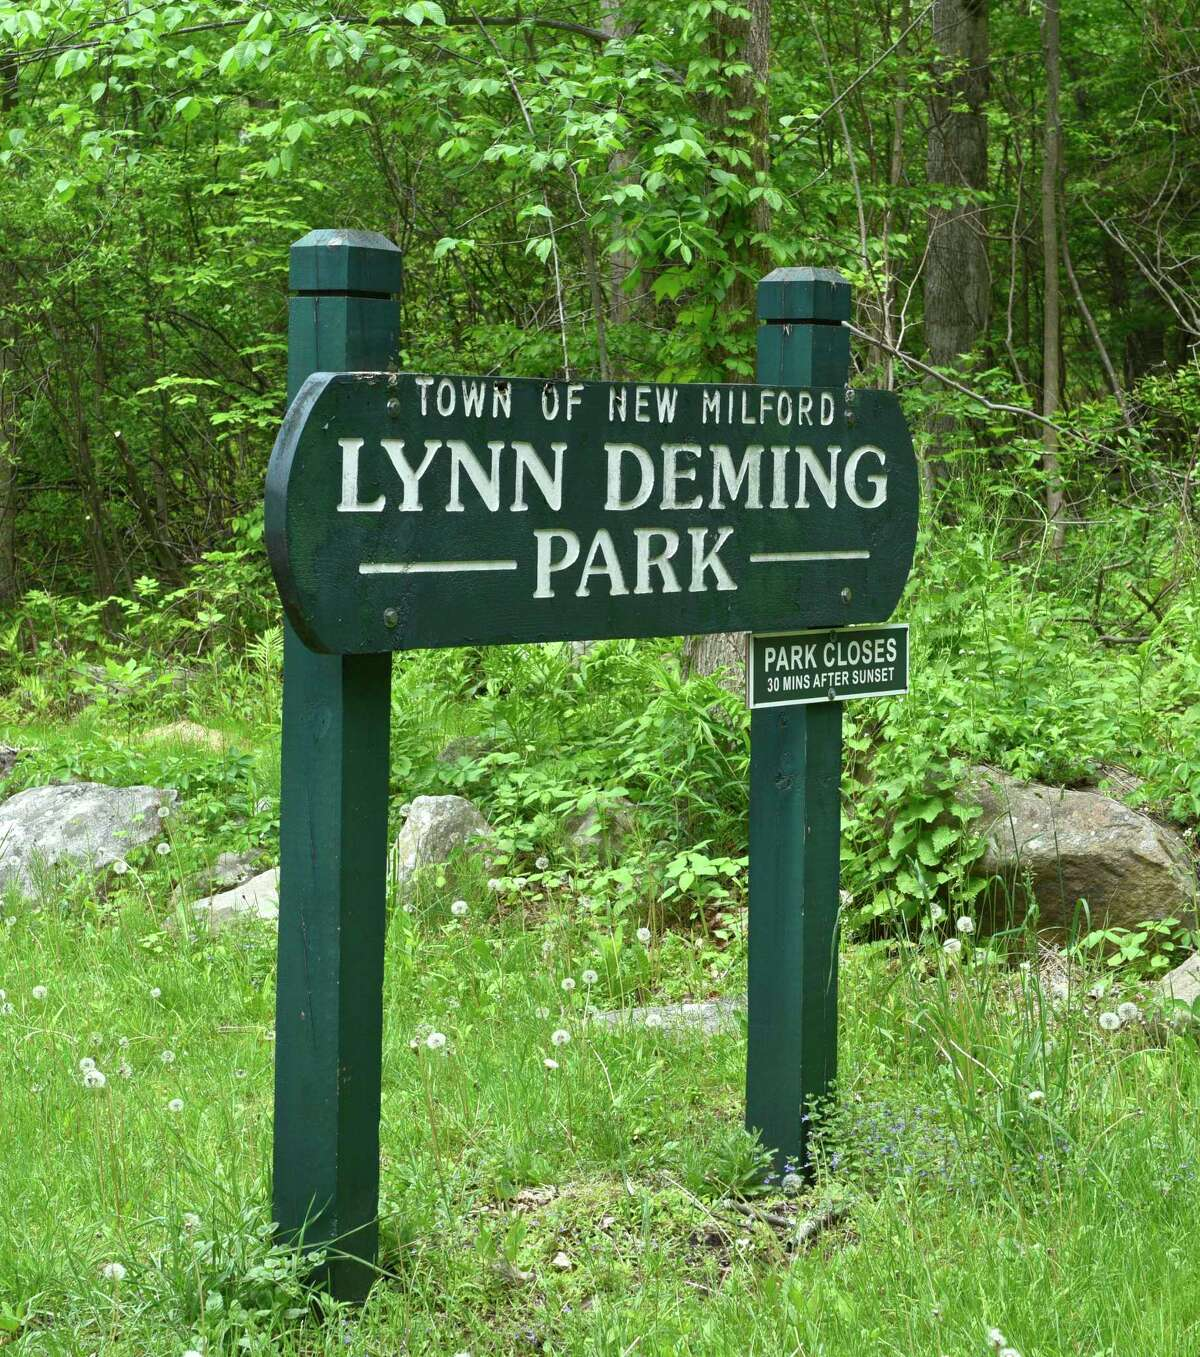 Renovations at Lynn Deming Park, in New Milford, Conn, are nearing completion. May 23, 2017.